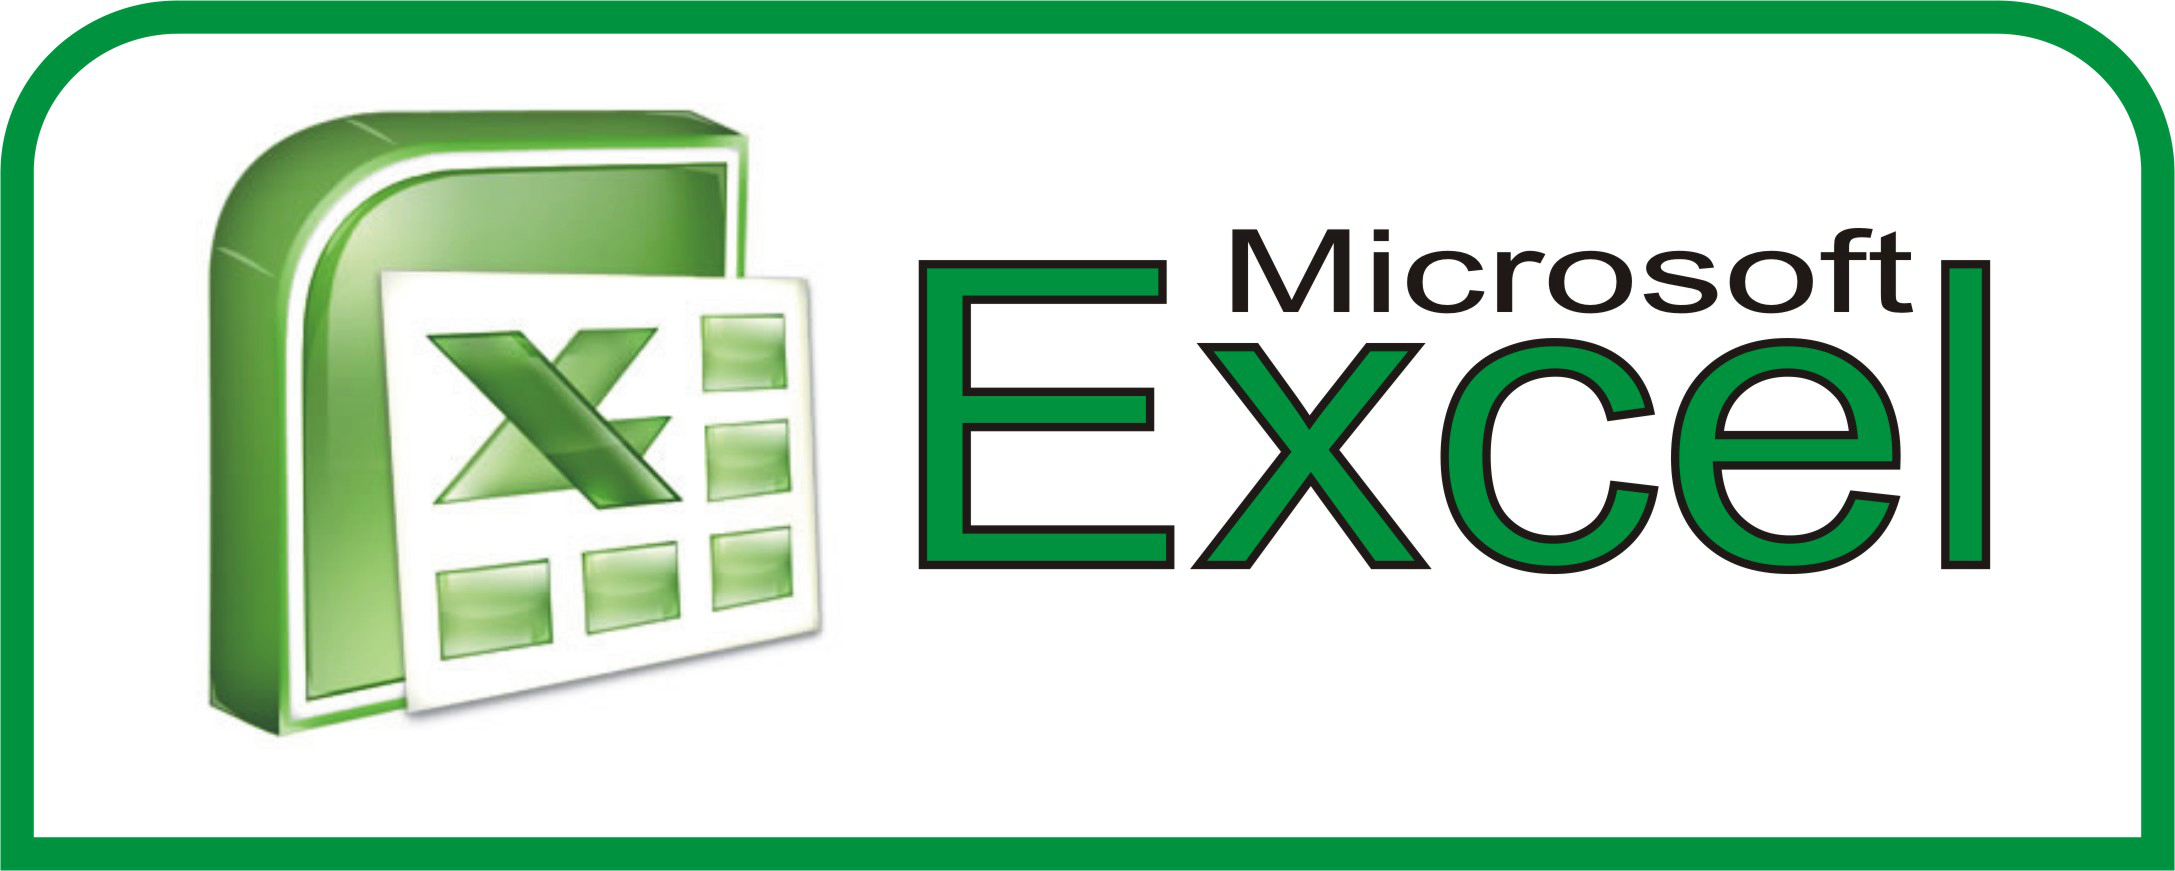 Ediblewildsus  Winsome  Excel Shortcuts You Probably Didnt Know About  Techdissected With Exciting Excel Variable Besides Countif Formula In Excel Furthermore Concatenation Excel With Breathtaking Convert Minutes To Hours In Excel Also Excel Subtotal If In Addition Excel Dynamic Cell Reference And Excel Taekwondo As Well As Compare Two Excel Sheets For Differences Additionally Used Excel Boats For Sale From Techdissectedcom With Ediblewildsus  Exciting  Excel Shortcuts You Probably Didnt Know About  Techdissected With Breathtaking Excel Variable Besides Countif Formula In Excel Furthermore Concatenation Excel And Winsome Convert Minutes To Hours In Excel Also Excel Subtotal If In Addition Excel Dynamic Cell Reference From Techdissectedcom